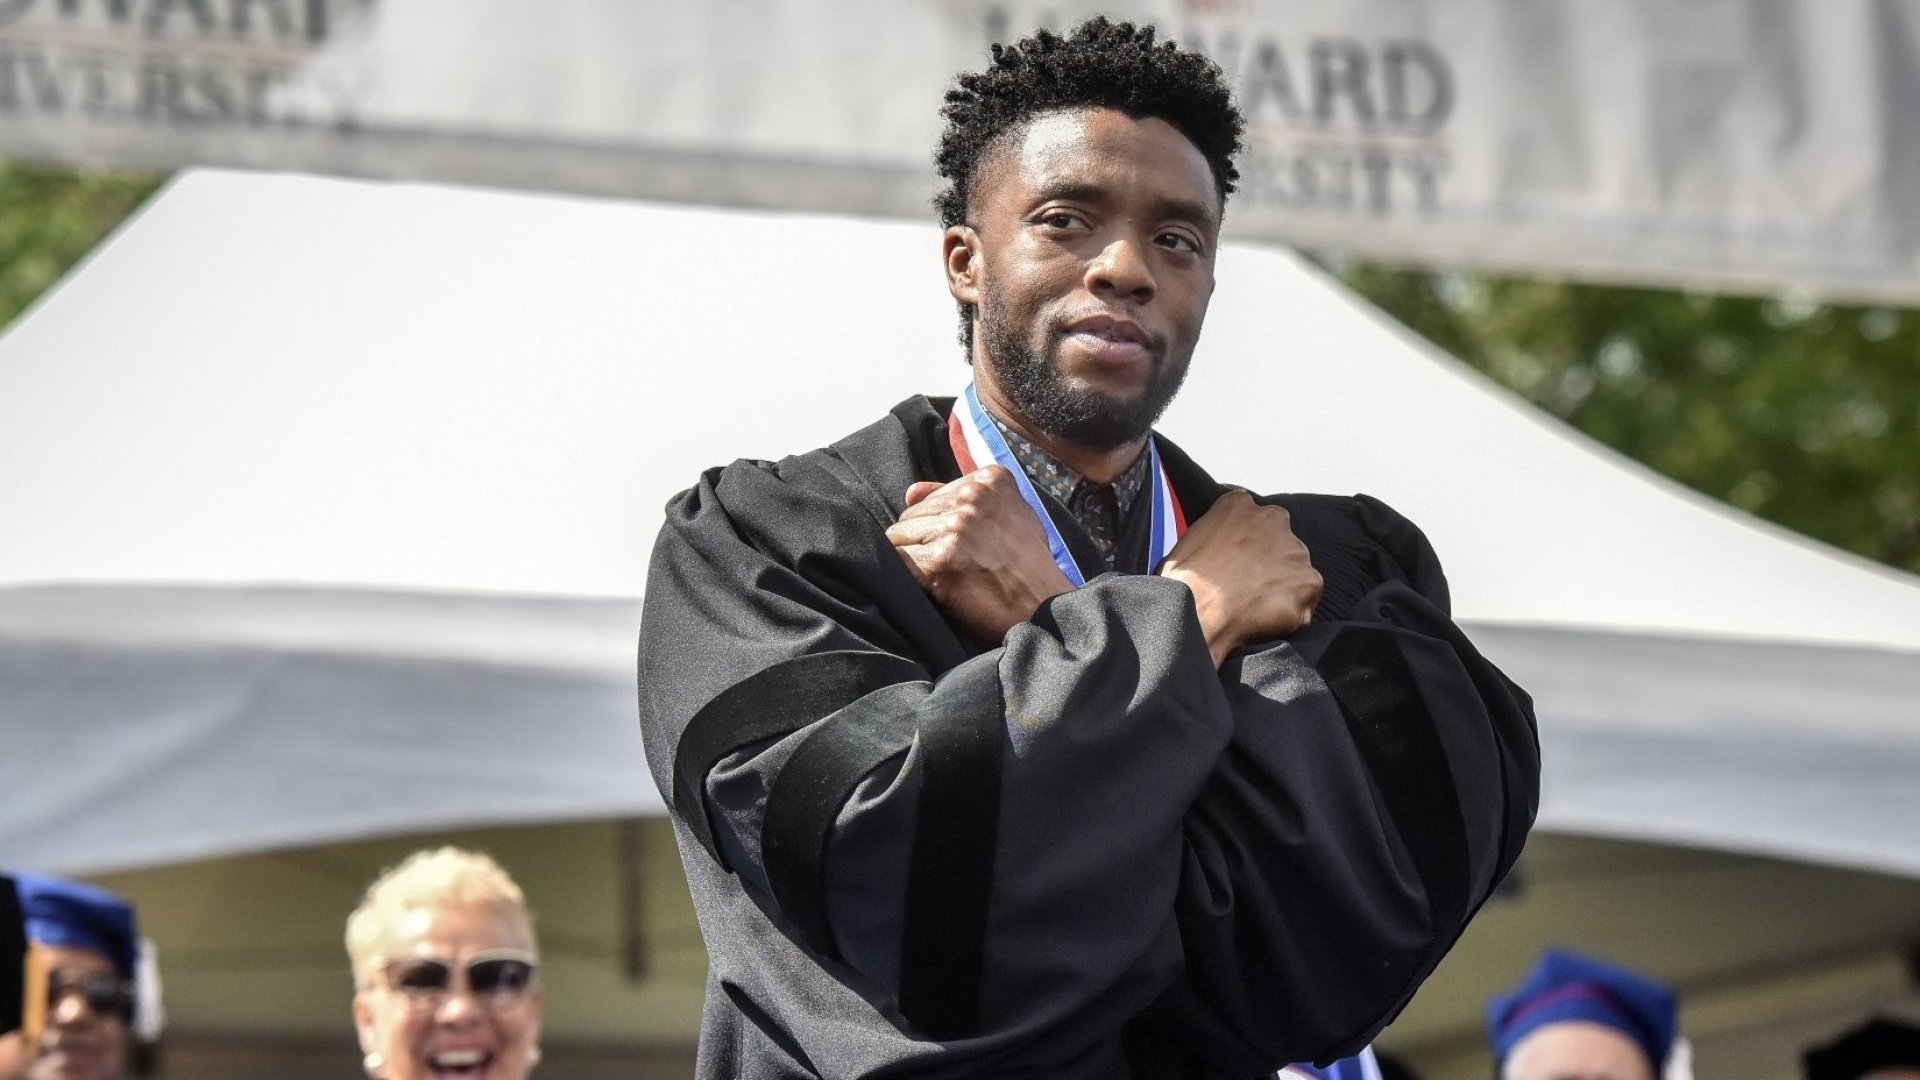 Actor Chadwick Boseman gives a Wakanda salute to the crowd as Howard University holds its commencement ceremonies on May 12, 2018, in Washington, D.C.